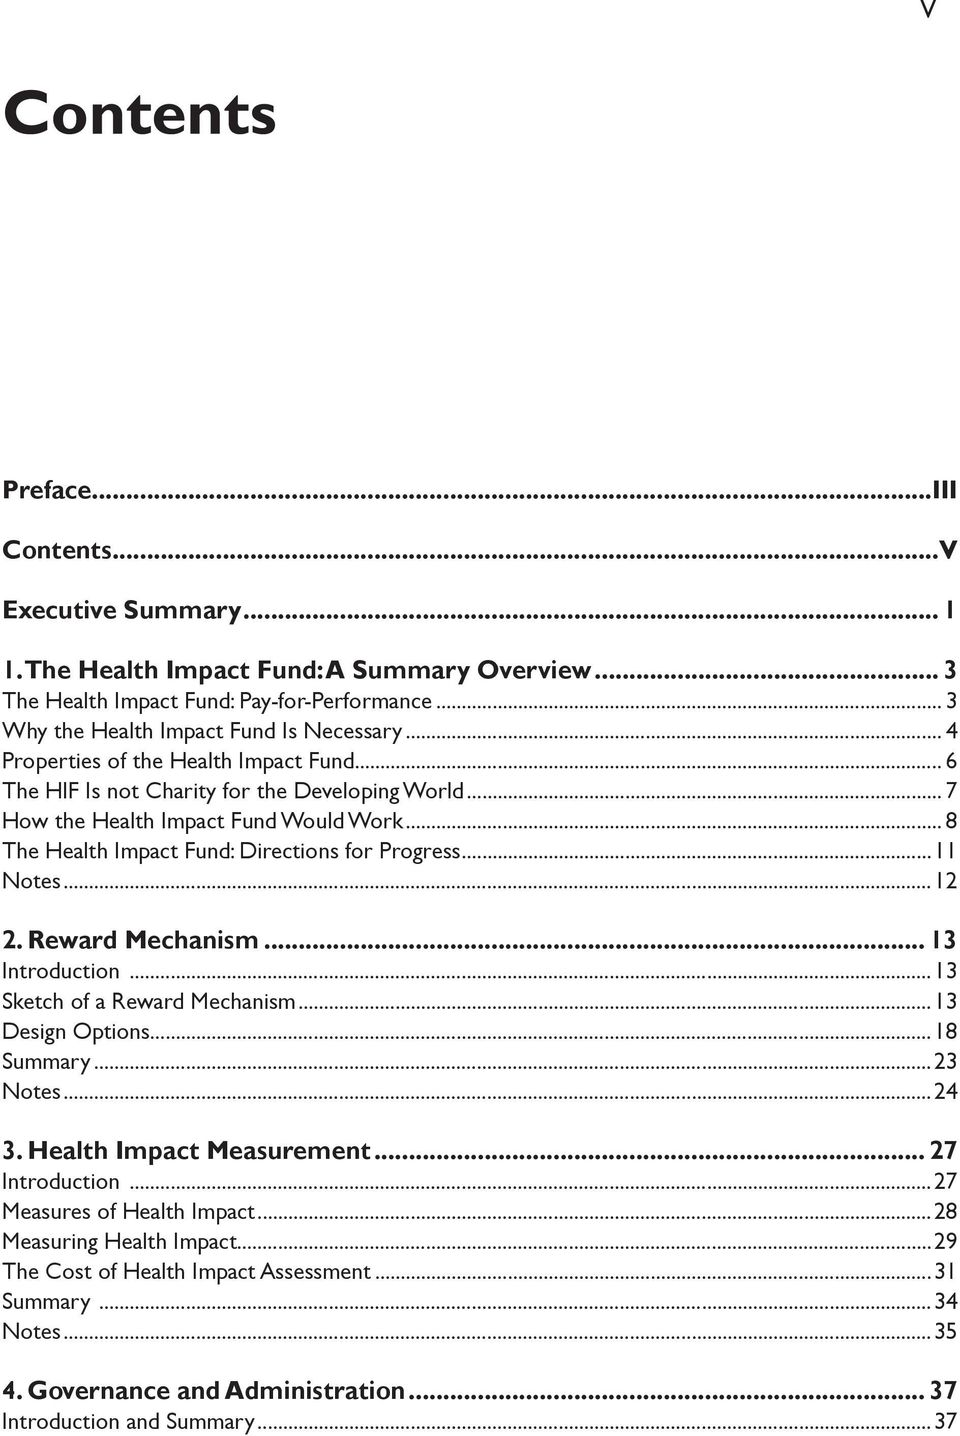 .. 8 The Health Impact Fund: Directions for Progress...11 Notes...12 2. Reward Mechanism... 13 Introduction...13 Sketch of a Reward Mechanism...13 Design Options...18 Summary...23 Notes...24 3.